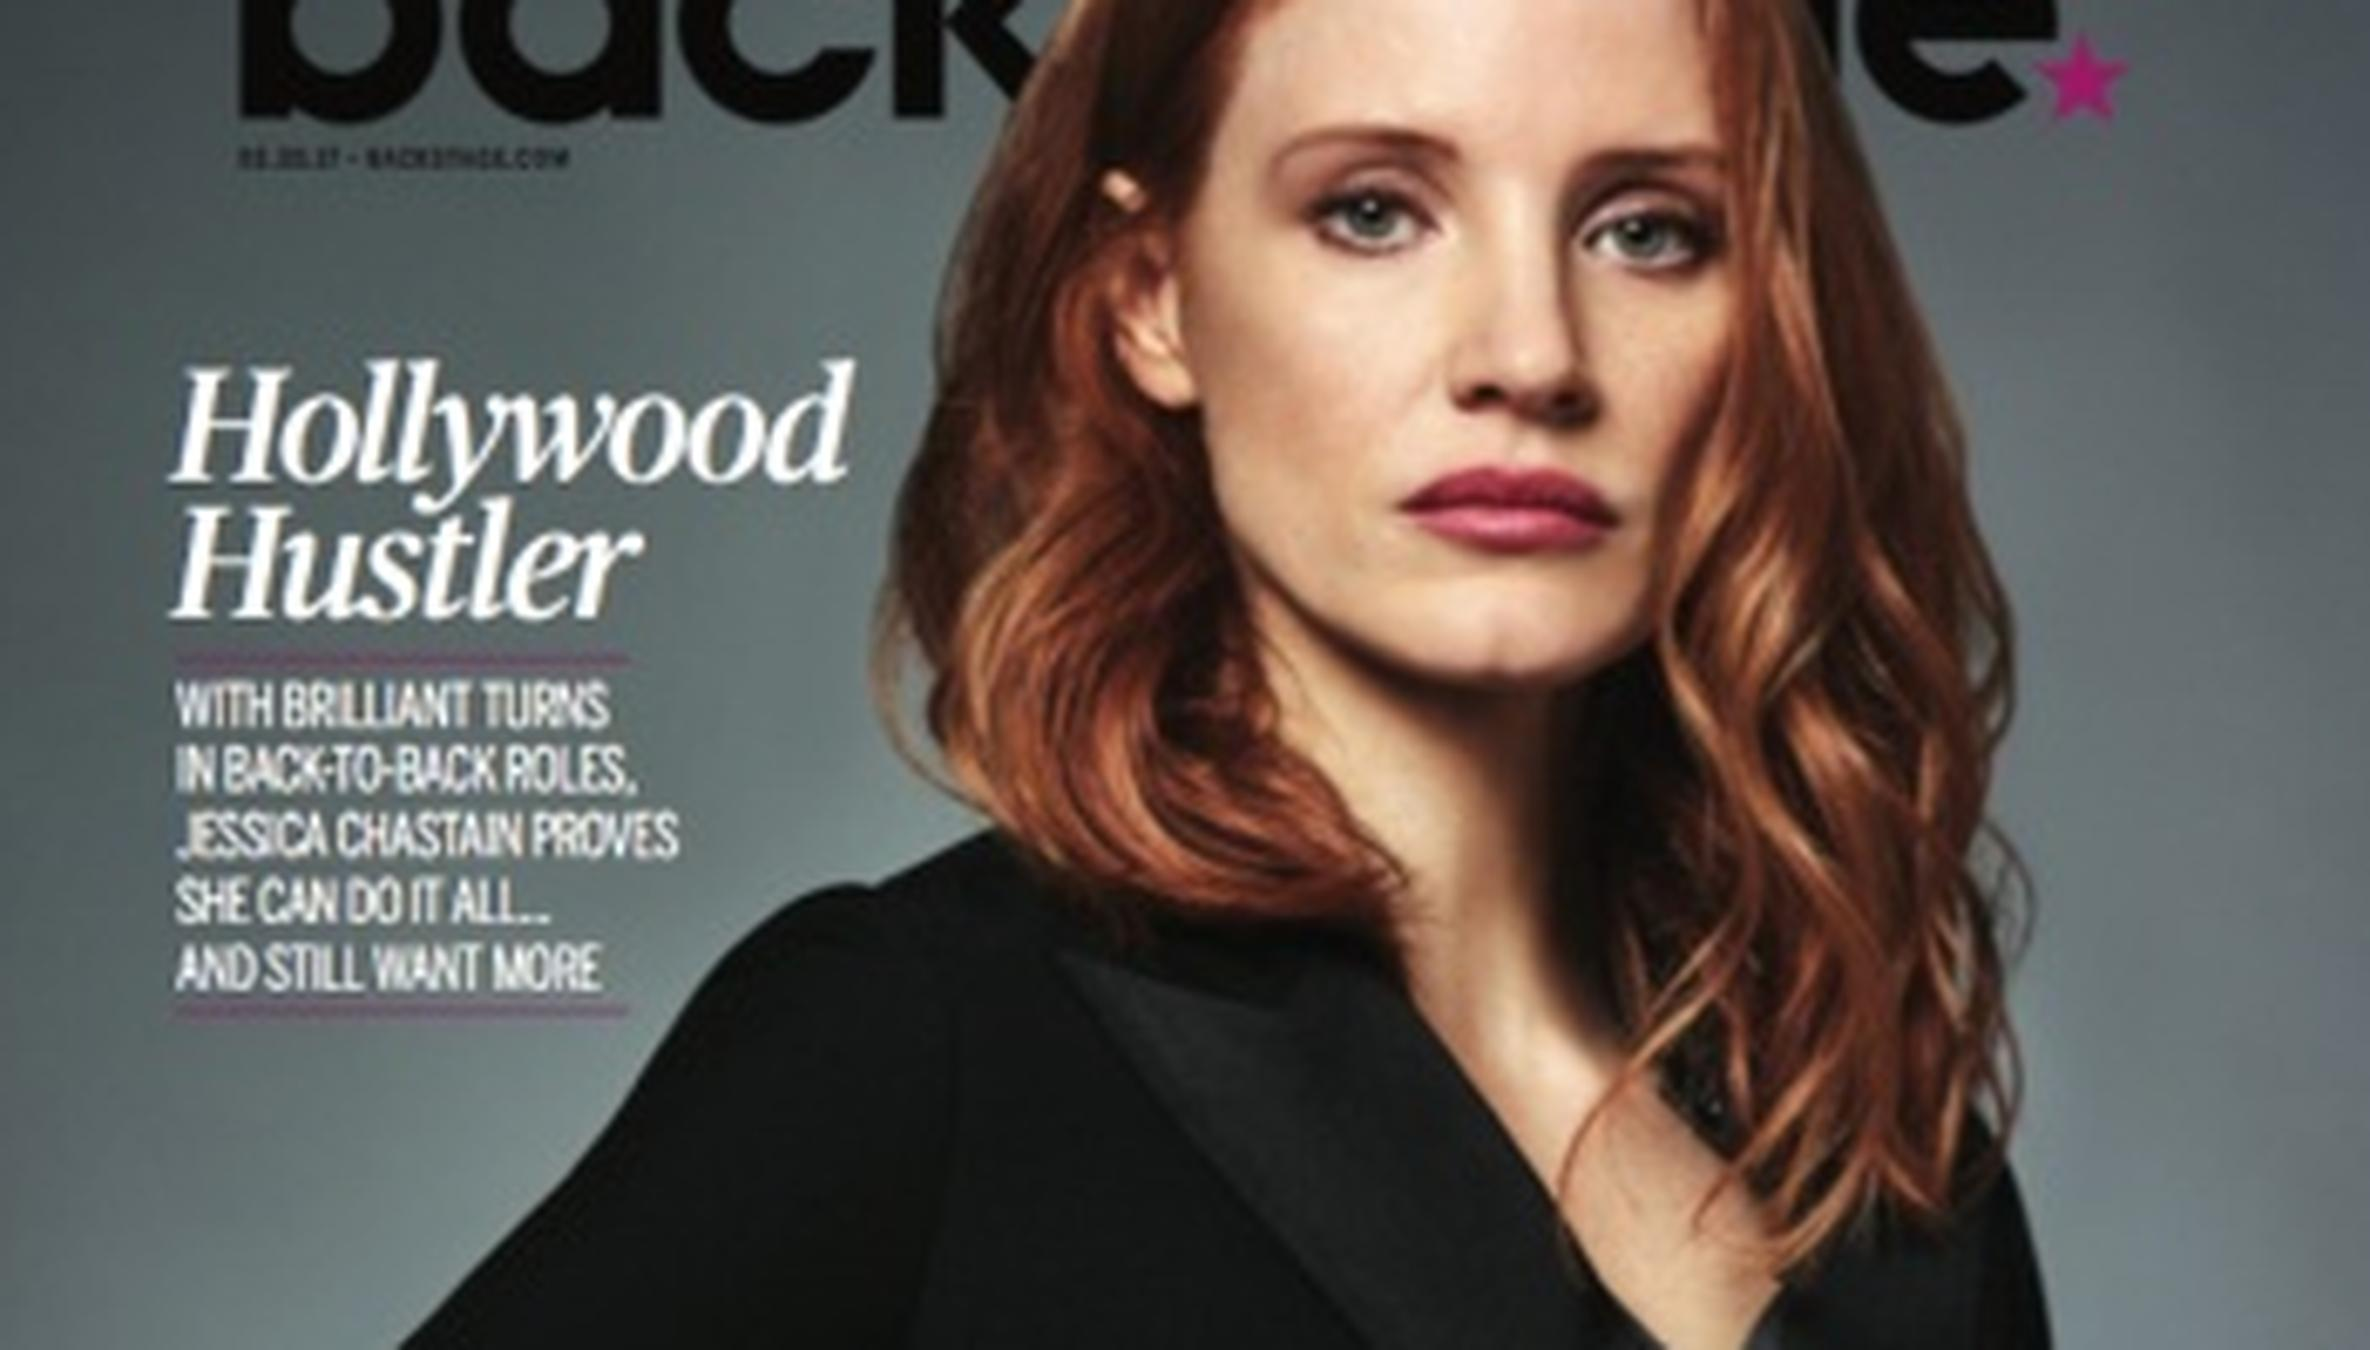 Jessica Chastain Discusses Whether Success Has Changed Her in Marie Claire's December 2012 Issue